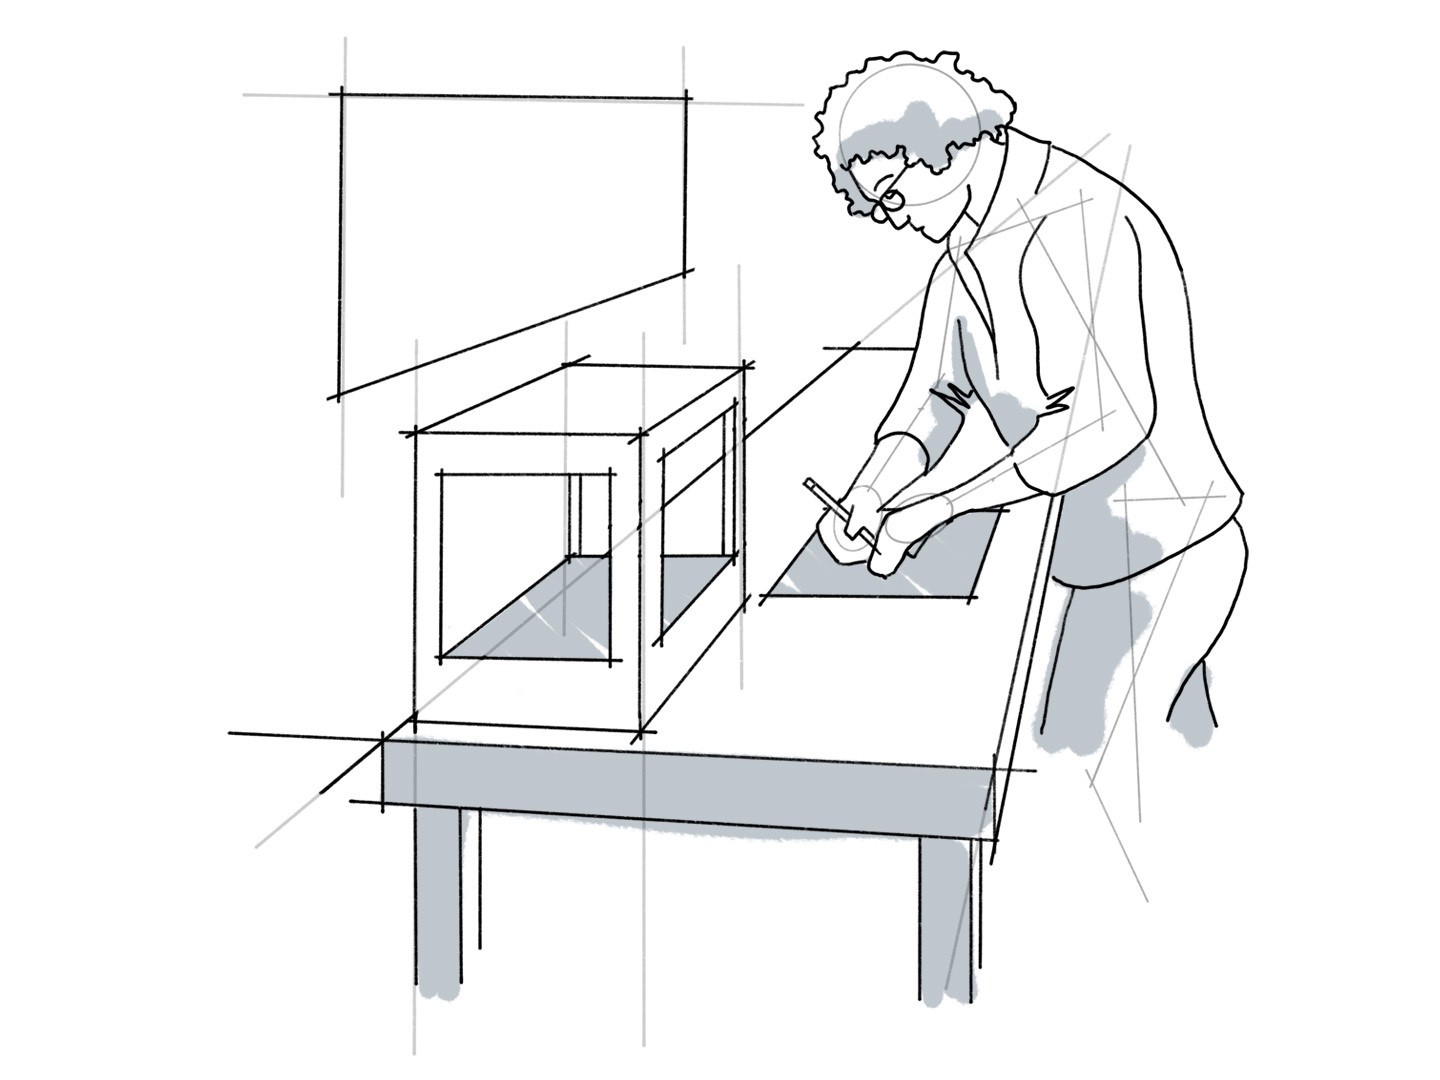 A line drawing of a person working at a workbench.